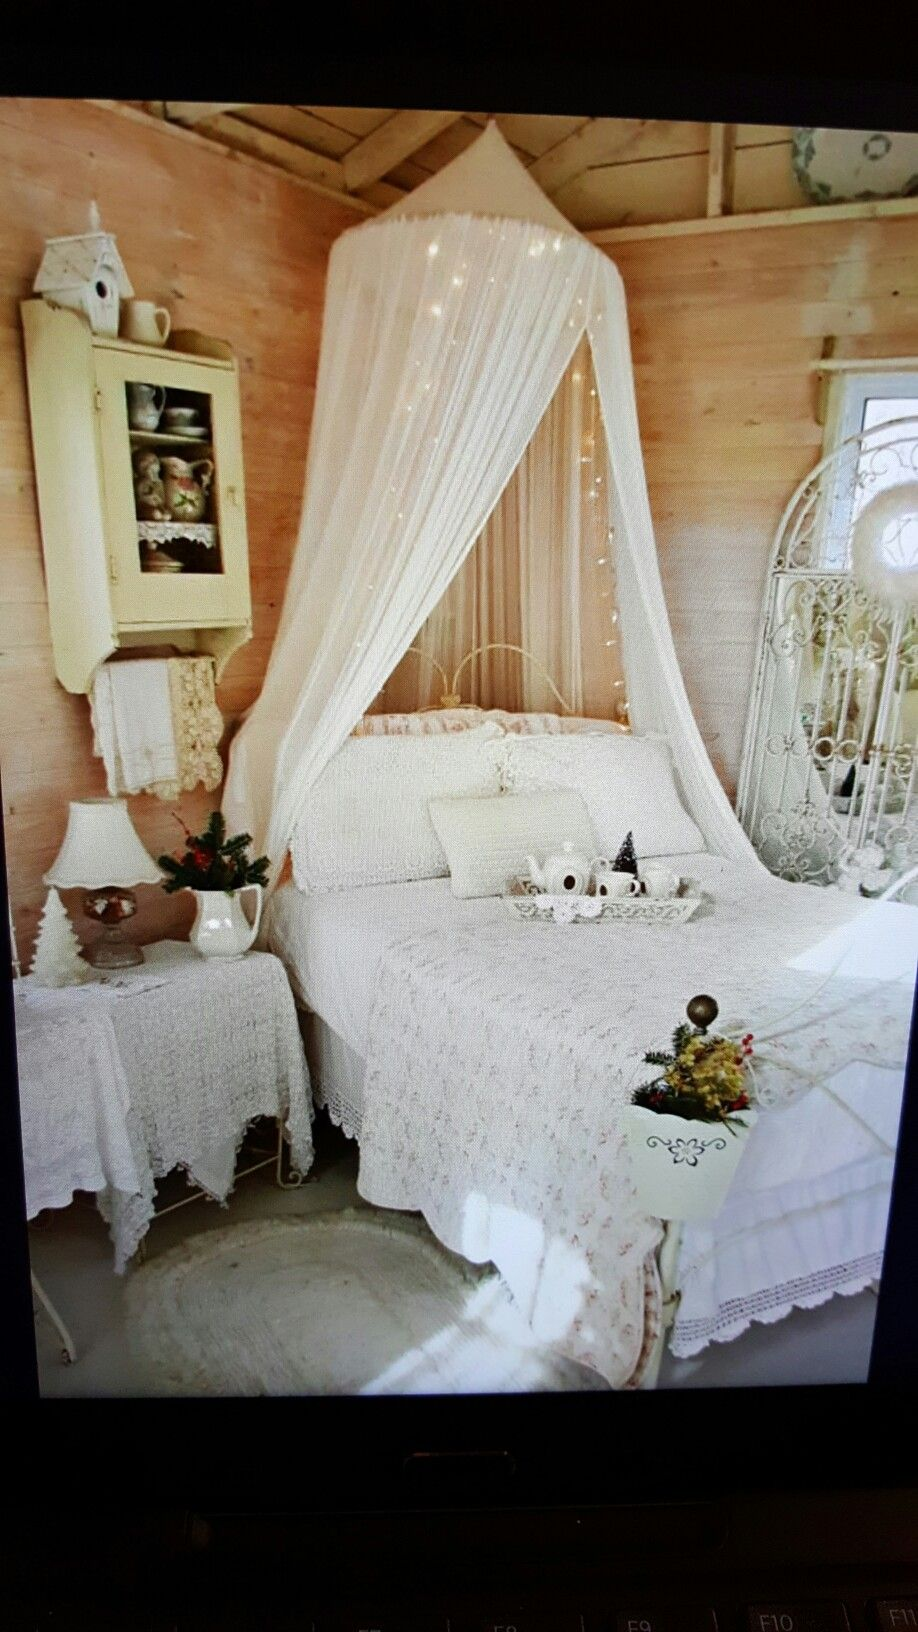 Pin by darcy hiestand on indoors pinterest dormitorio - Dormitorio shabby chic romantico ...